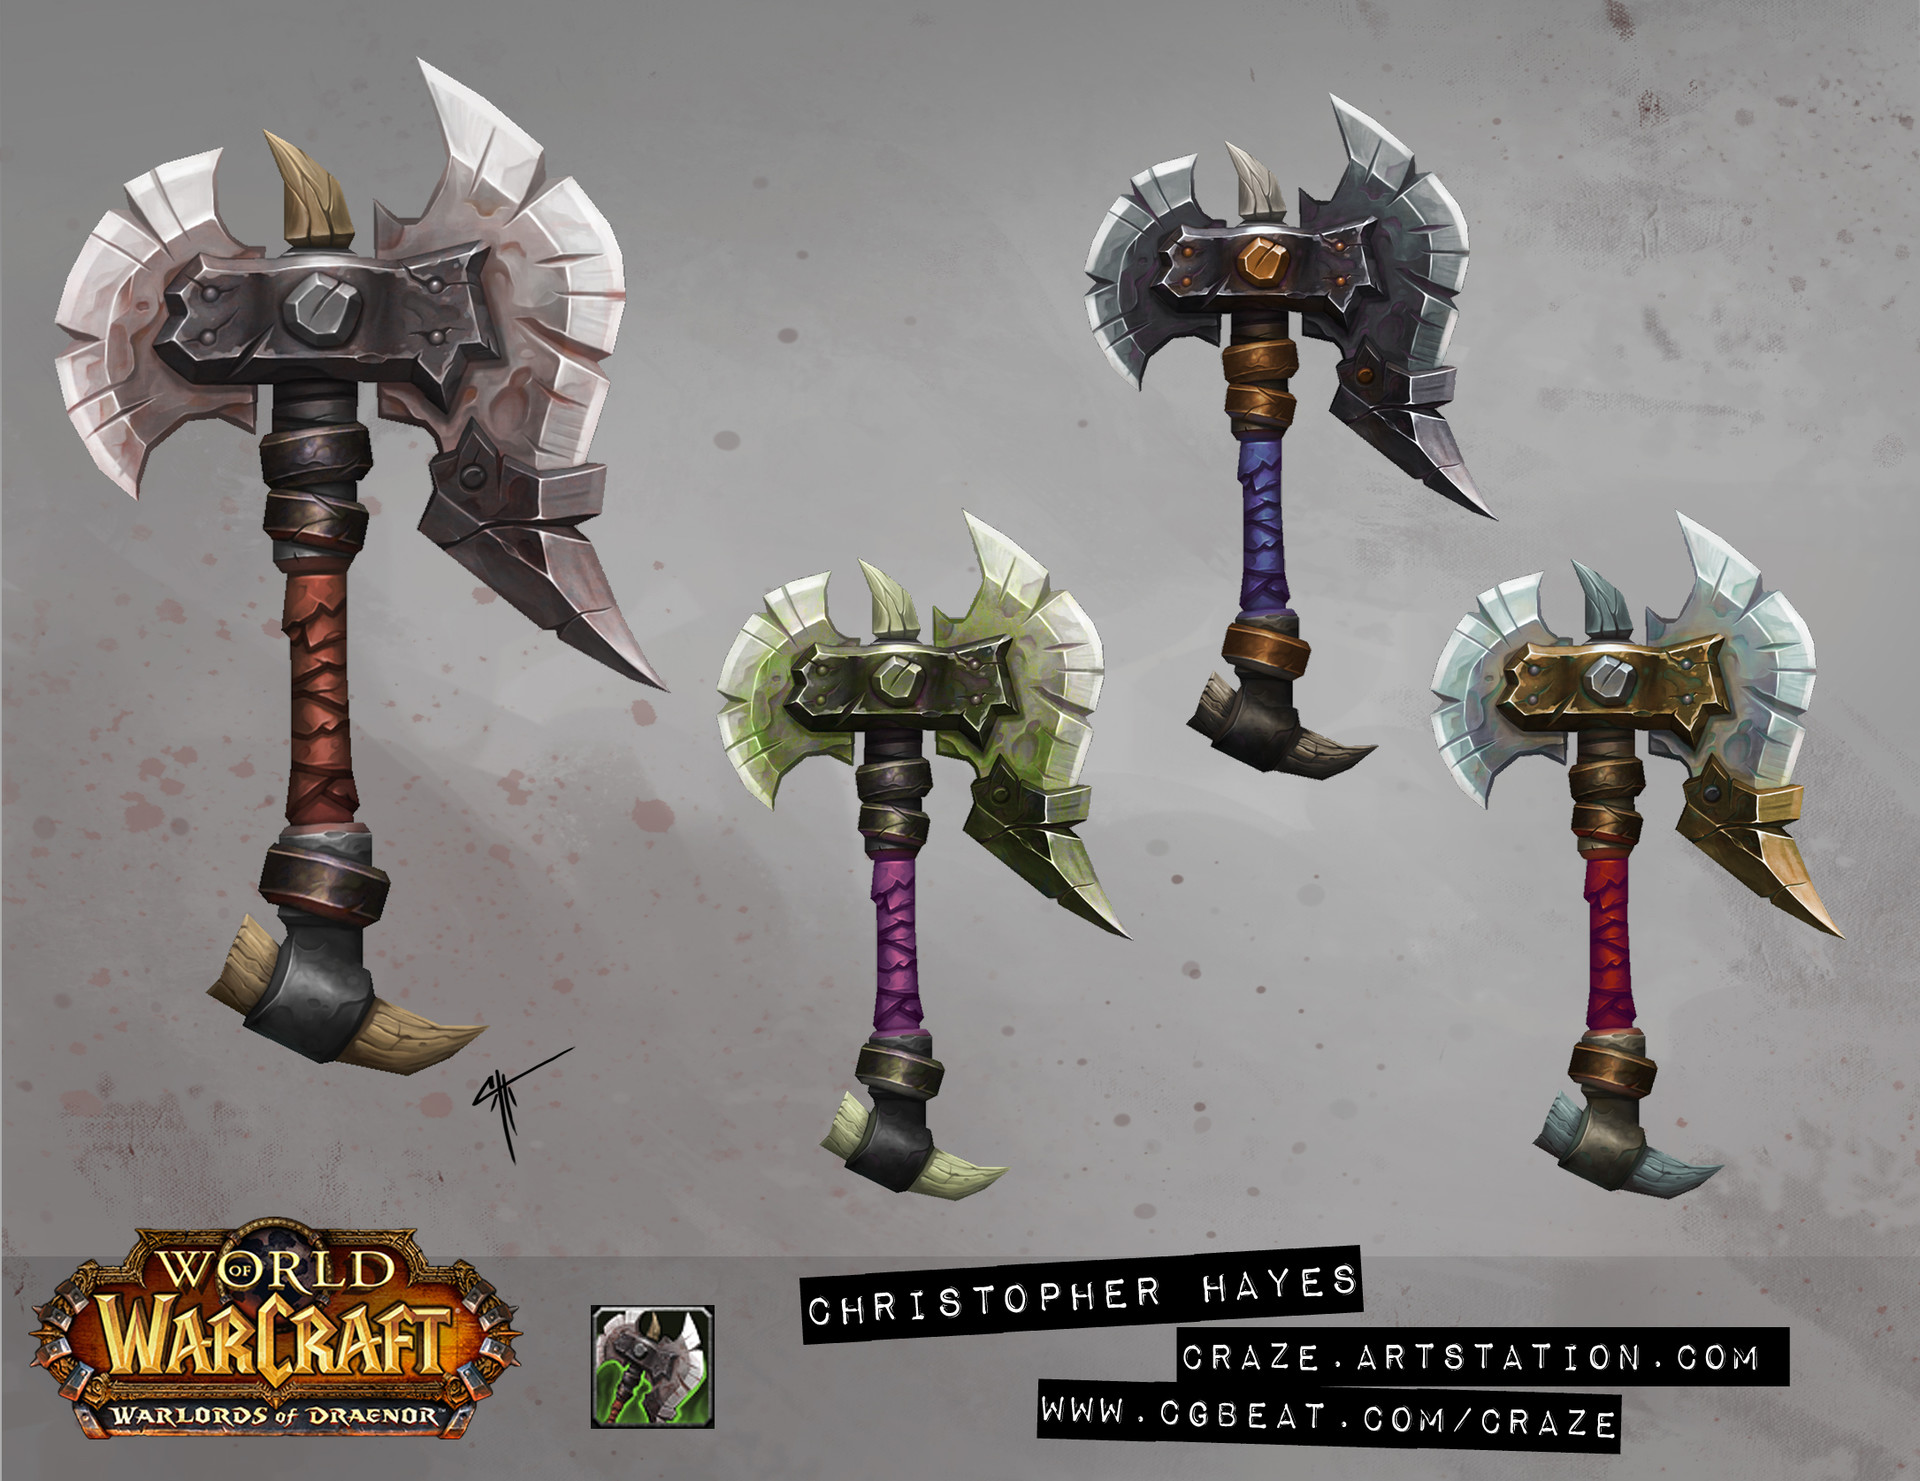 Christopher hayes axe 02 draenor